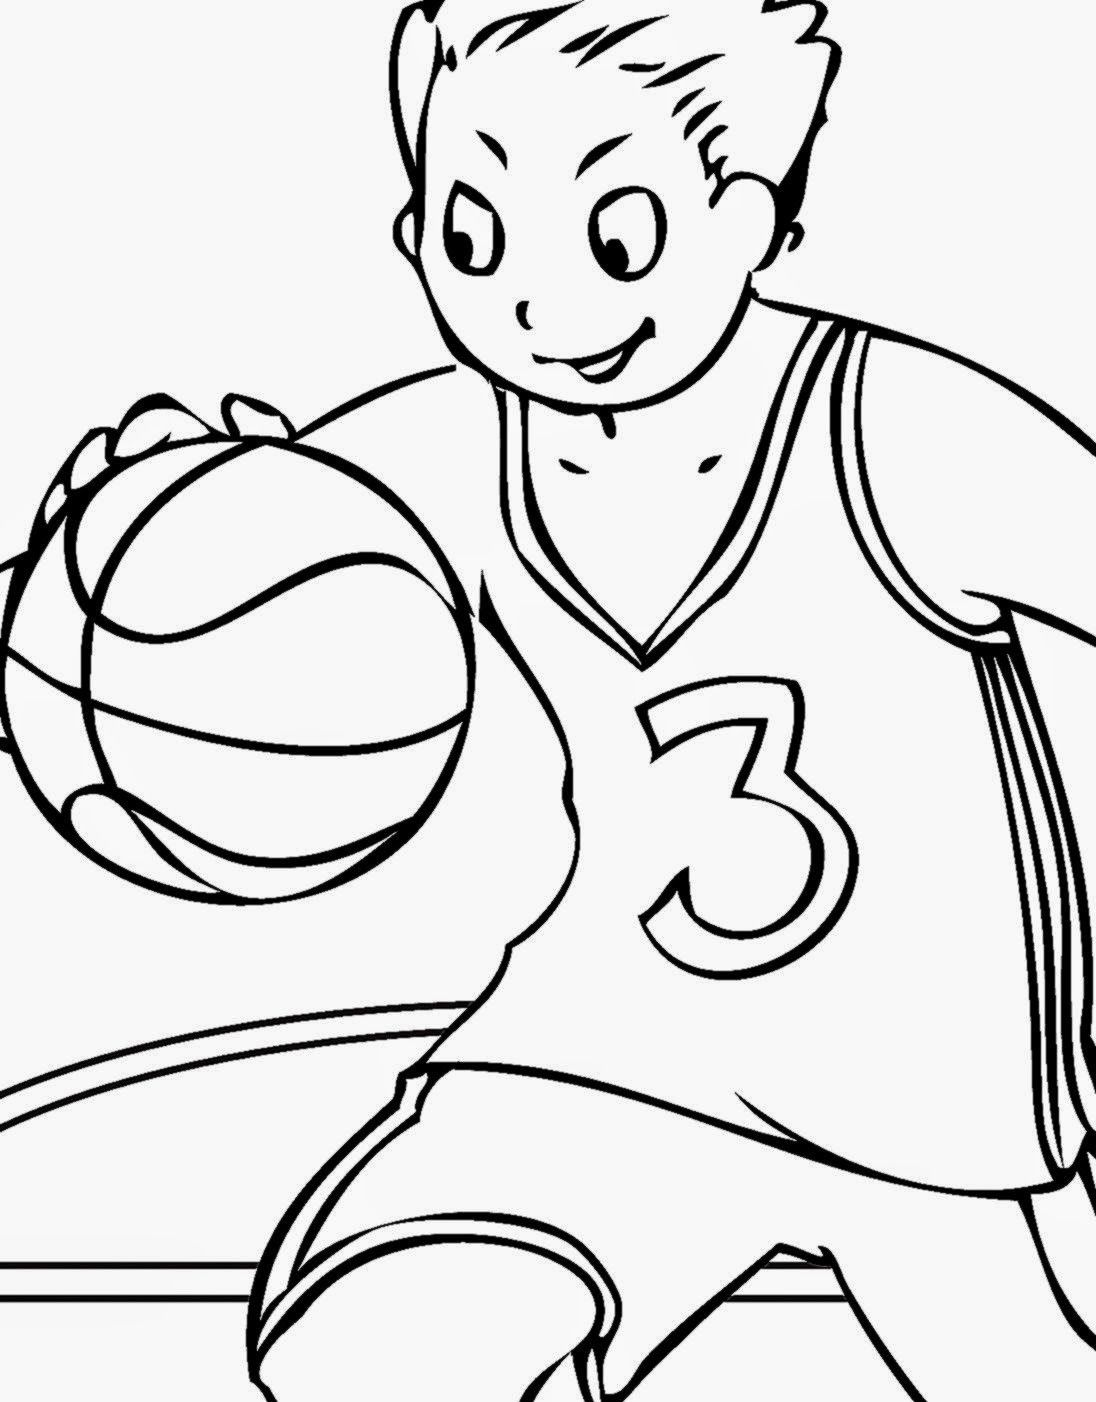 Basketball Coloring Pages Wfesdabi1fskihqekt8ffxideg65pfjja 1pisehcpm Sports Coloring Pages Free Coloring Pages Coloring Pages For Kids